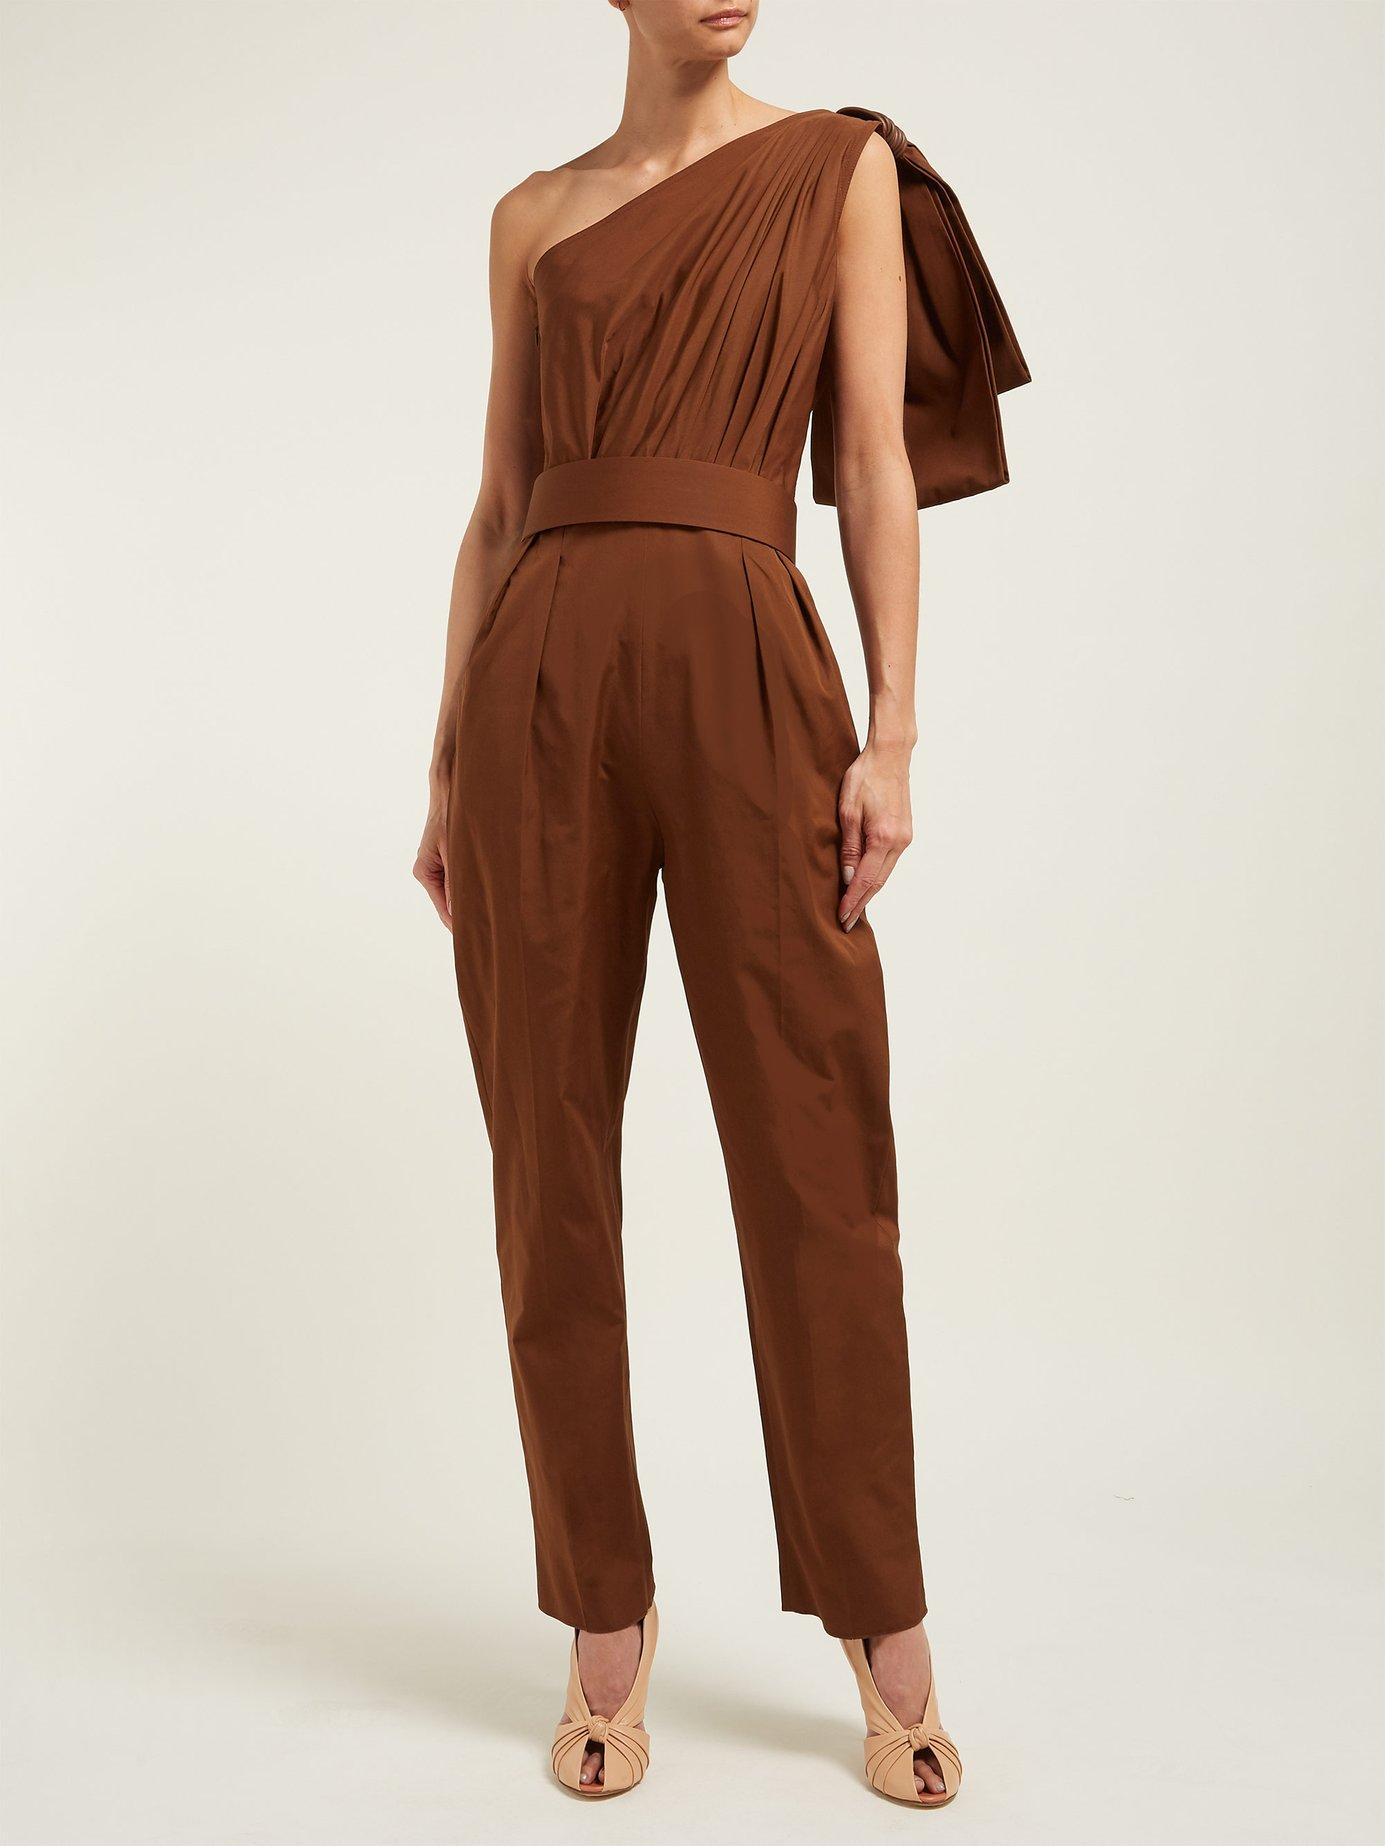 16377819a55 Max Mara - Brown Avola Jumpsuit - Lyst. View fullscreen